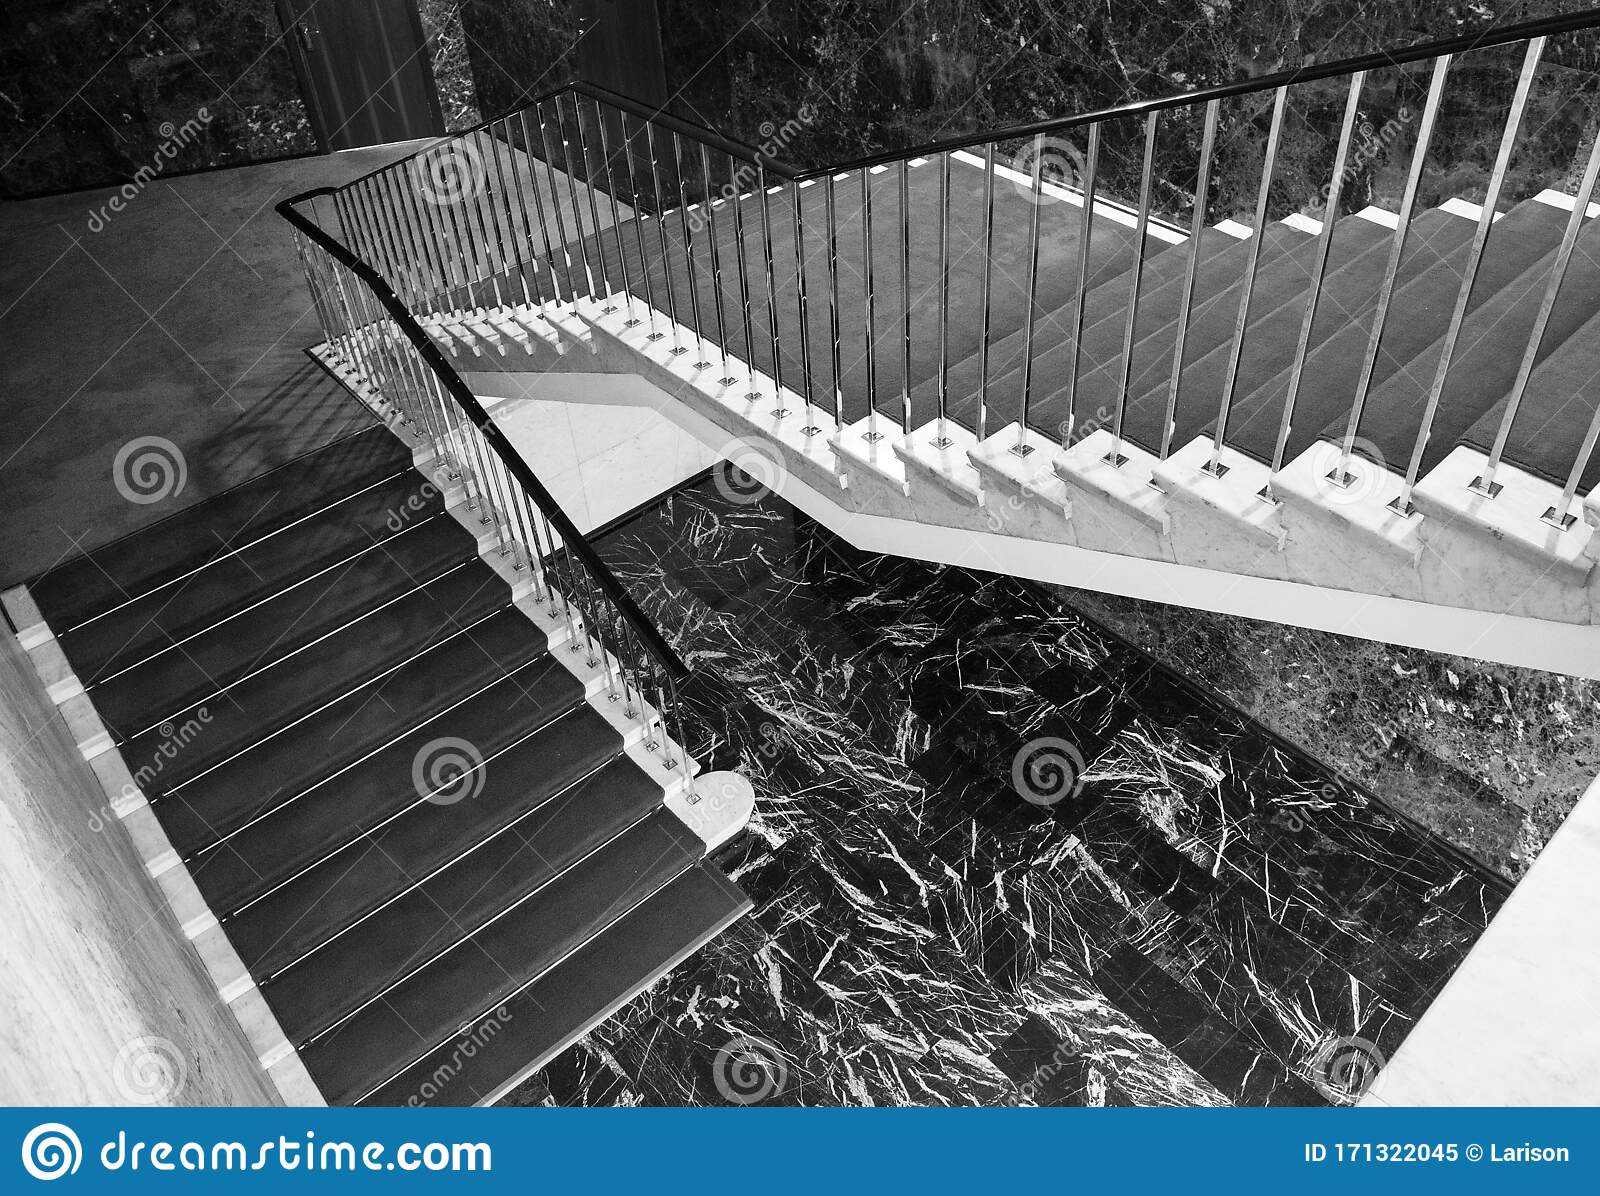 Staircase And Floor In Black Marble Detail Of The Interior Stock Image Image Of Flight Interior 171322045